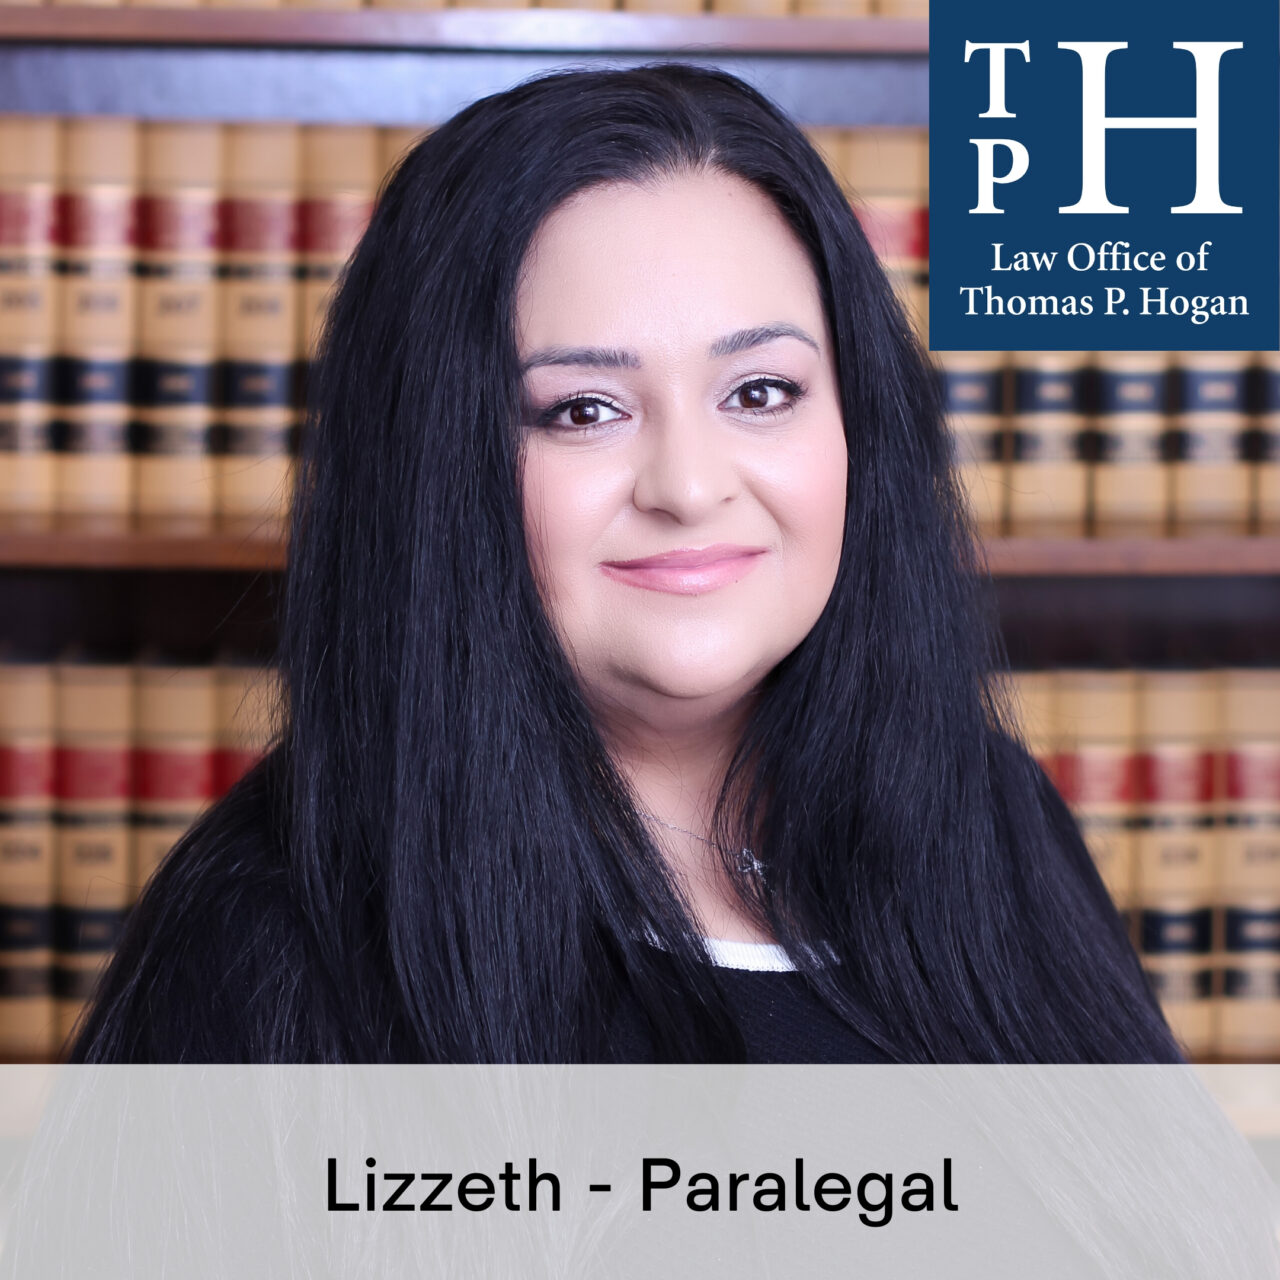 Lizzeth ParaLegal Law Office of Thomas P. Hogan